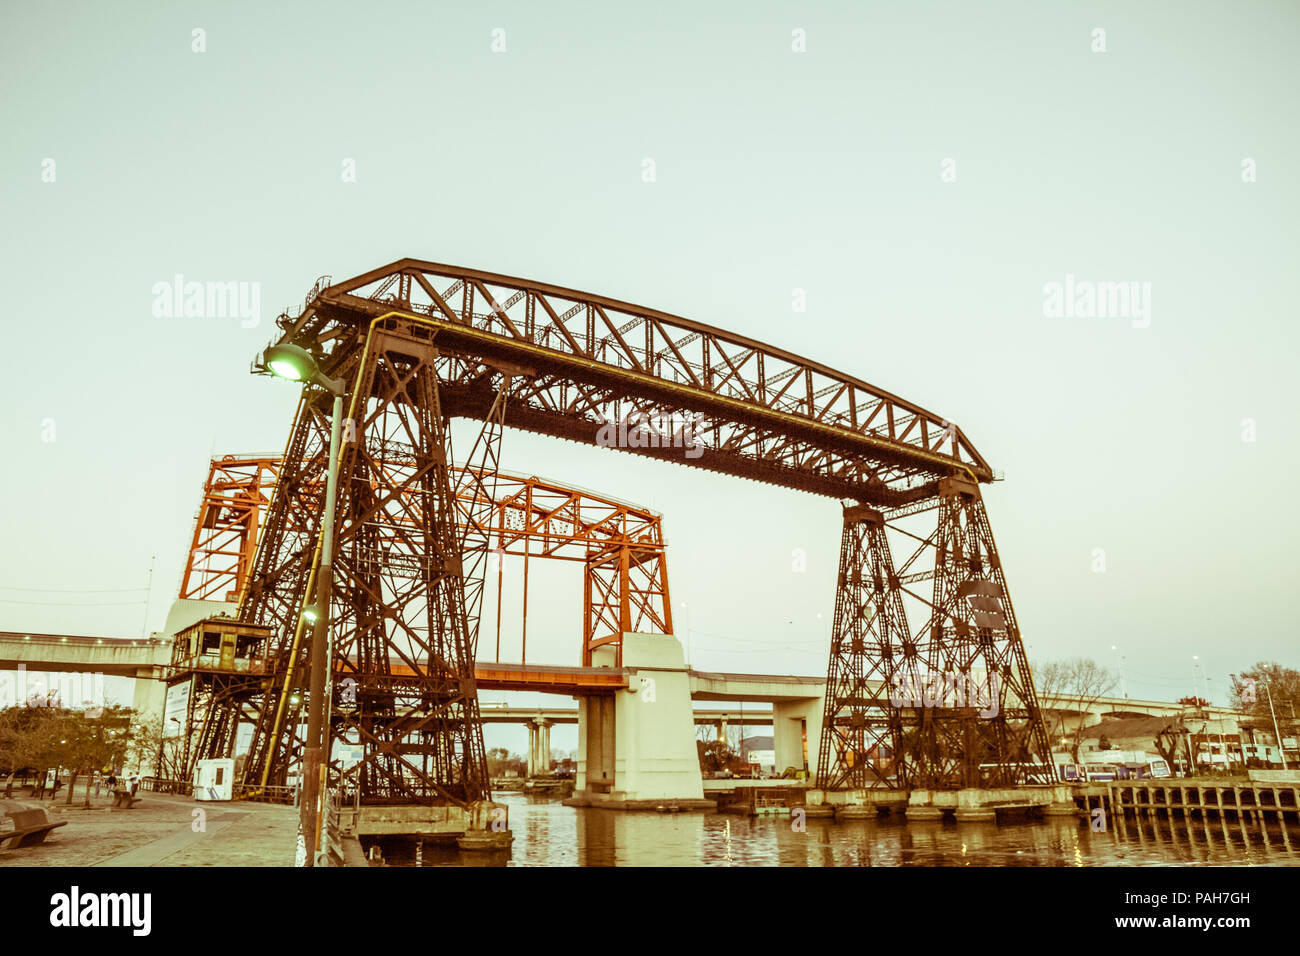 Nicolas Avellaneda Bridge, in La Boca, Buenos Aires, this is a very popular tourist destination in Buenos Aires, Argentina. Vintage and yesteryear eff - Stock Image